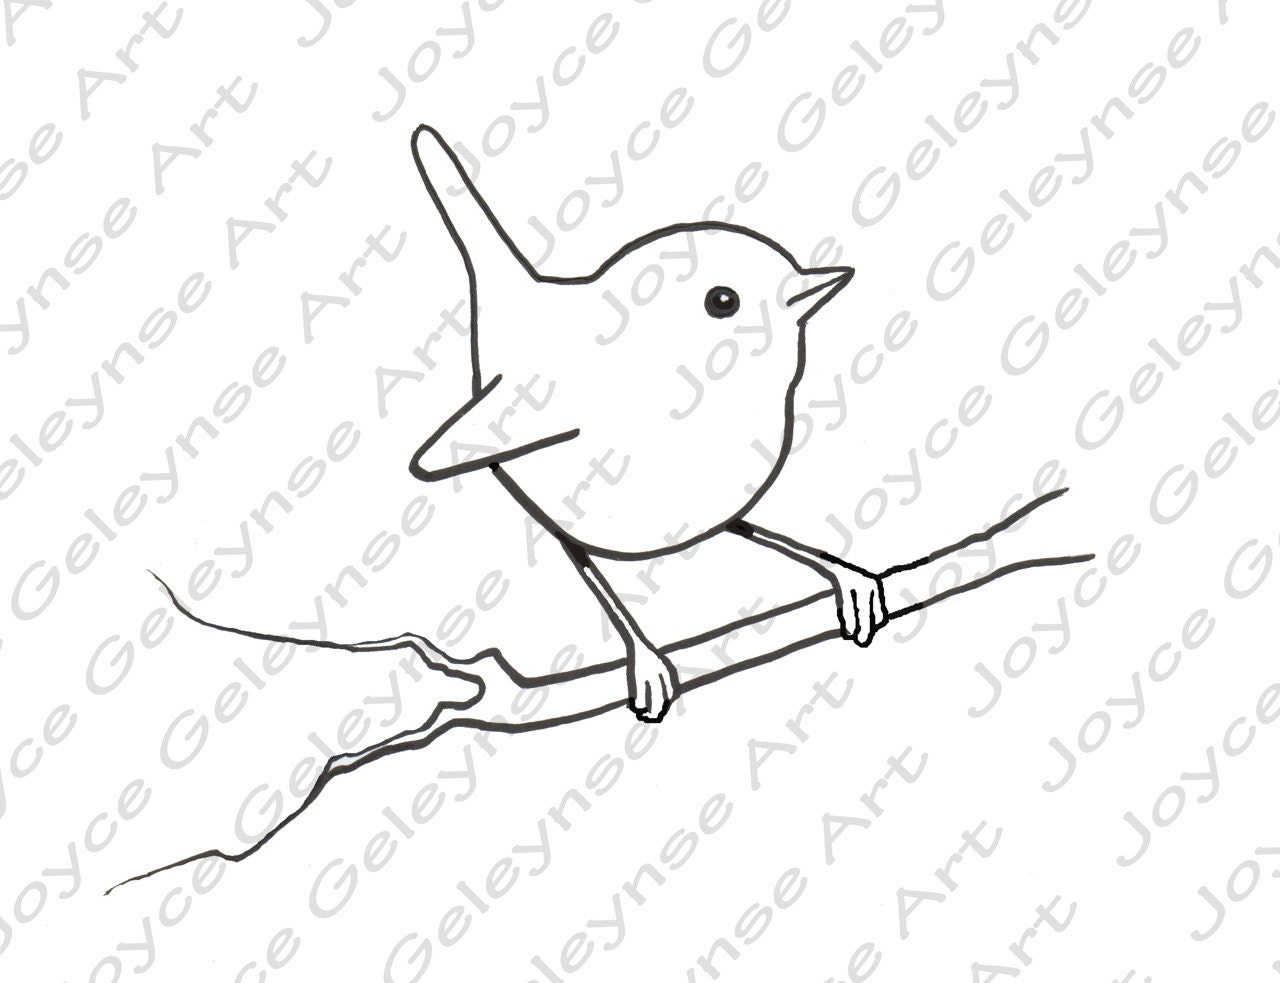 Drawing Lines Freehand : Digital stamp clip art little bird wren commercial use